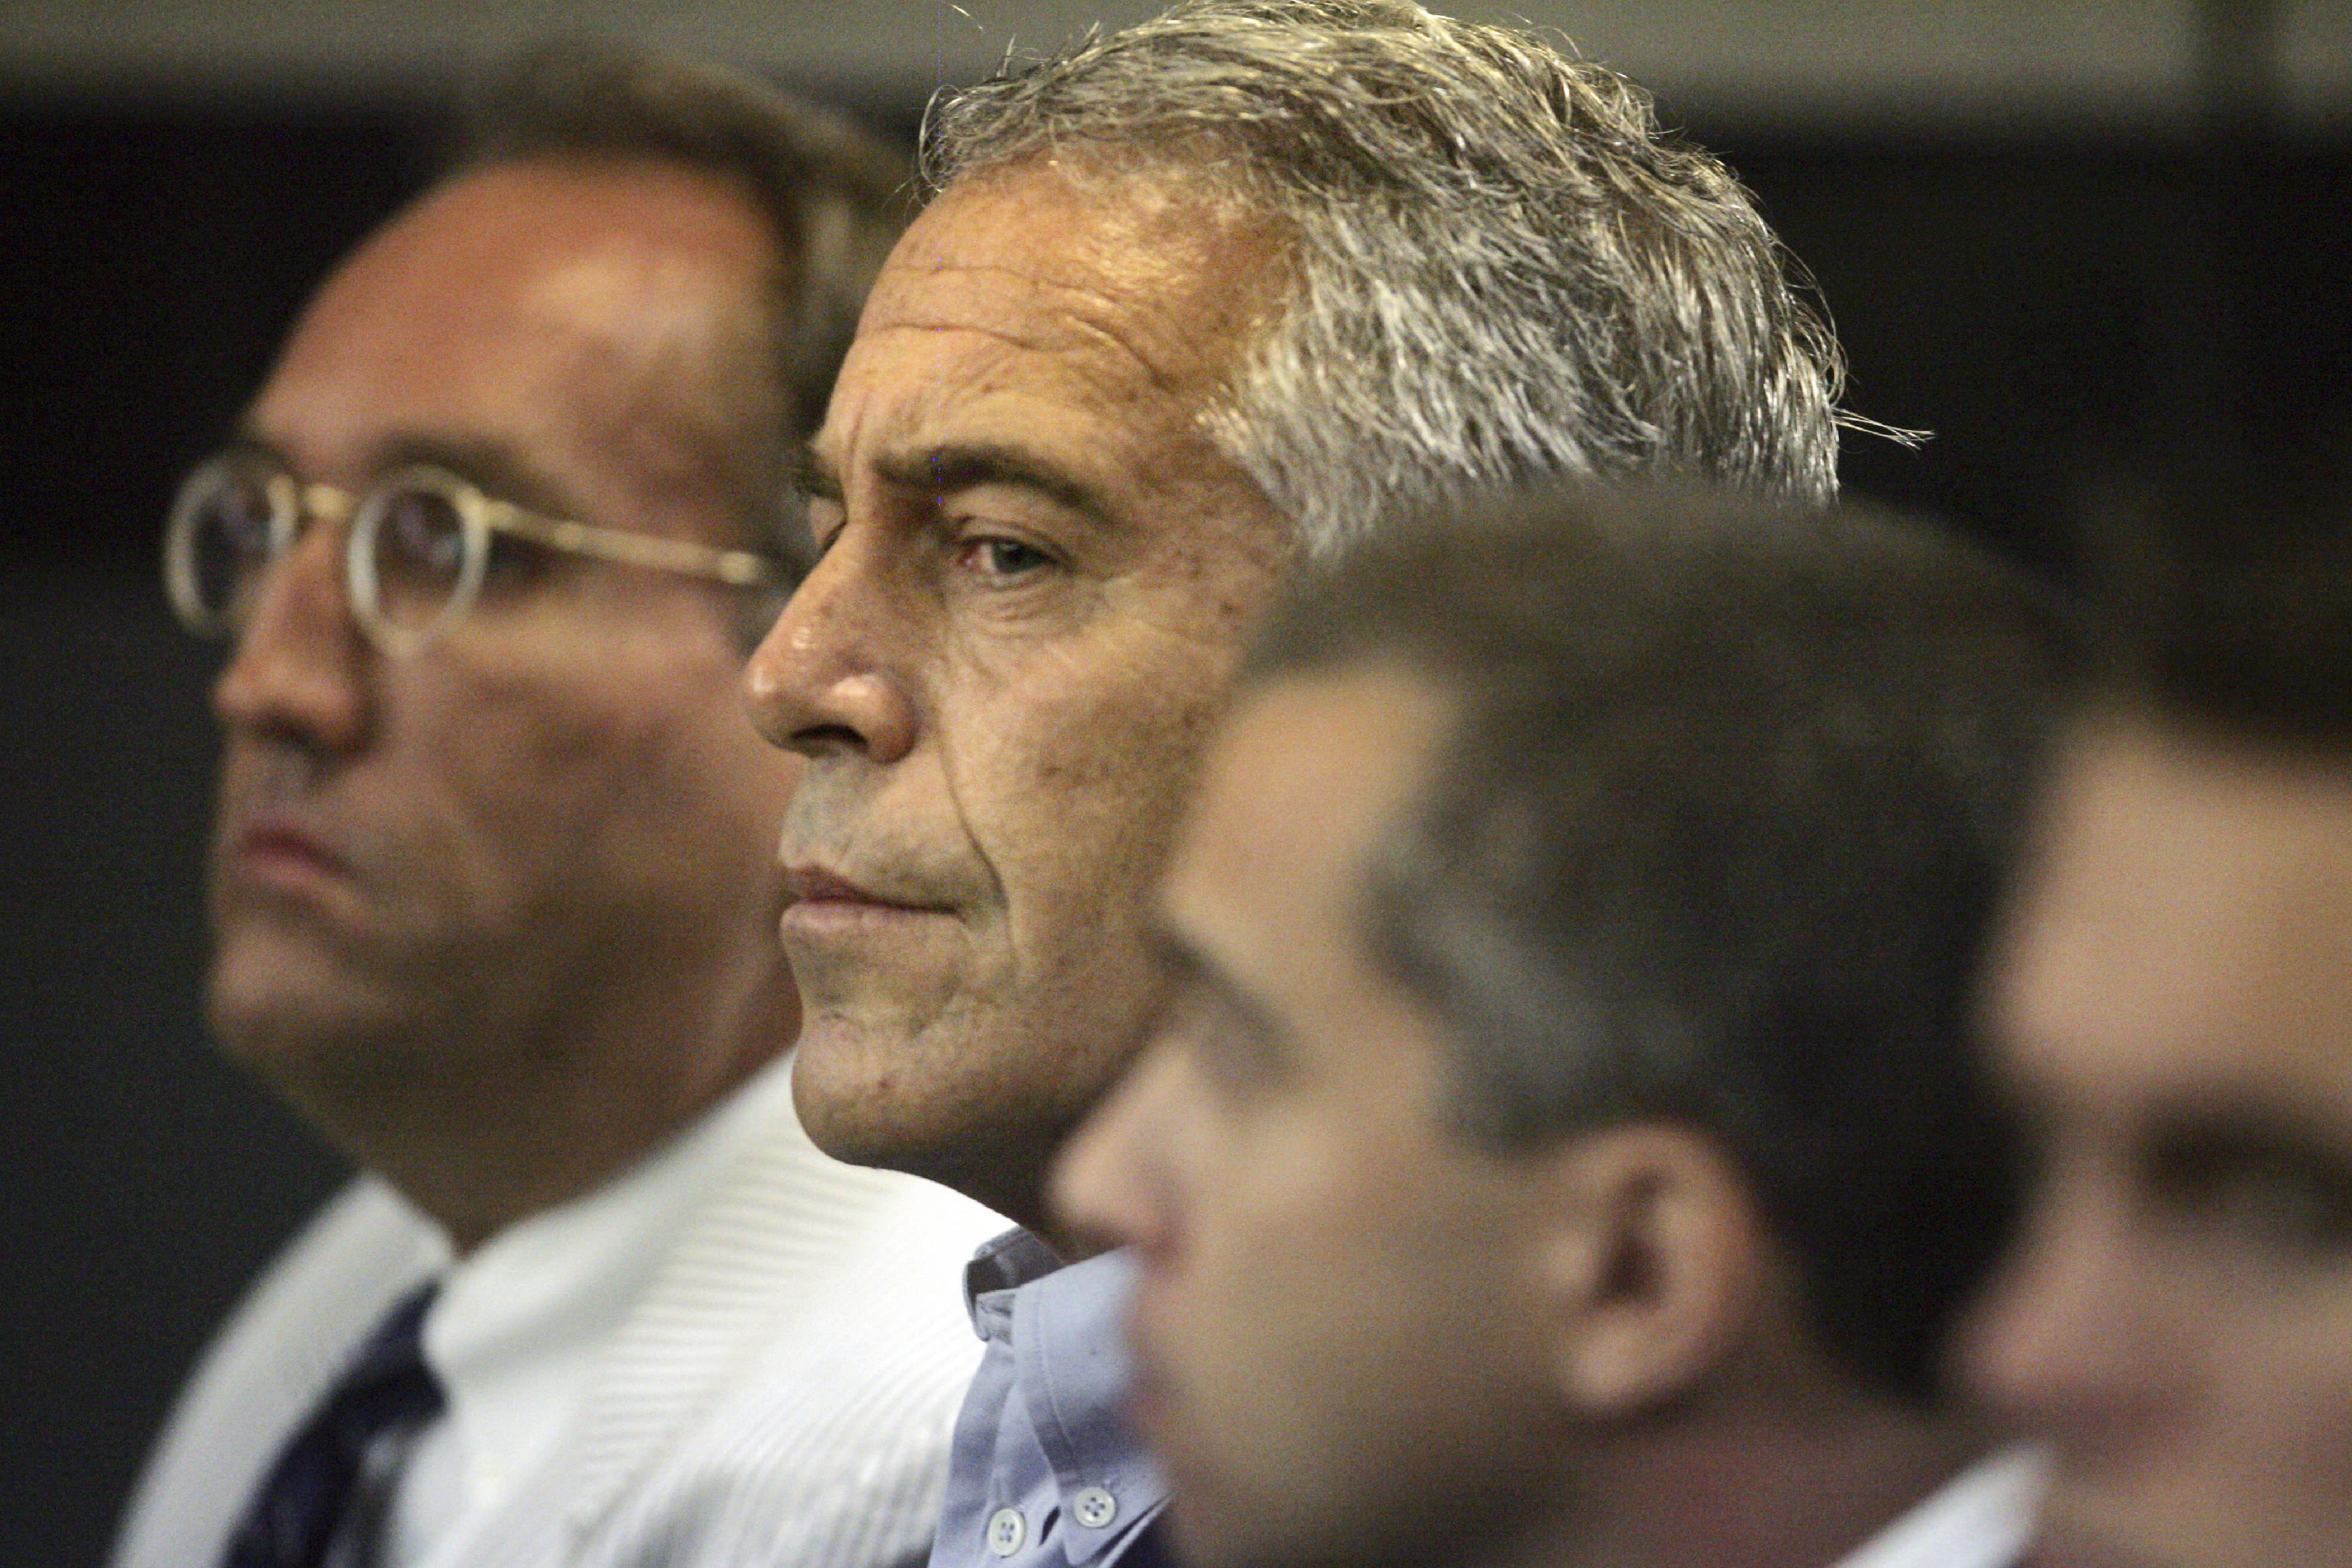 Jeffrey Epstein spent $350K to 'influence' potential witnesses